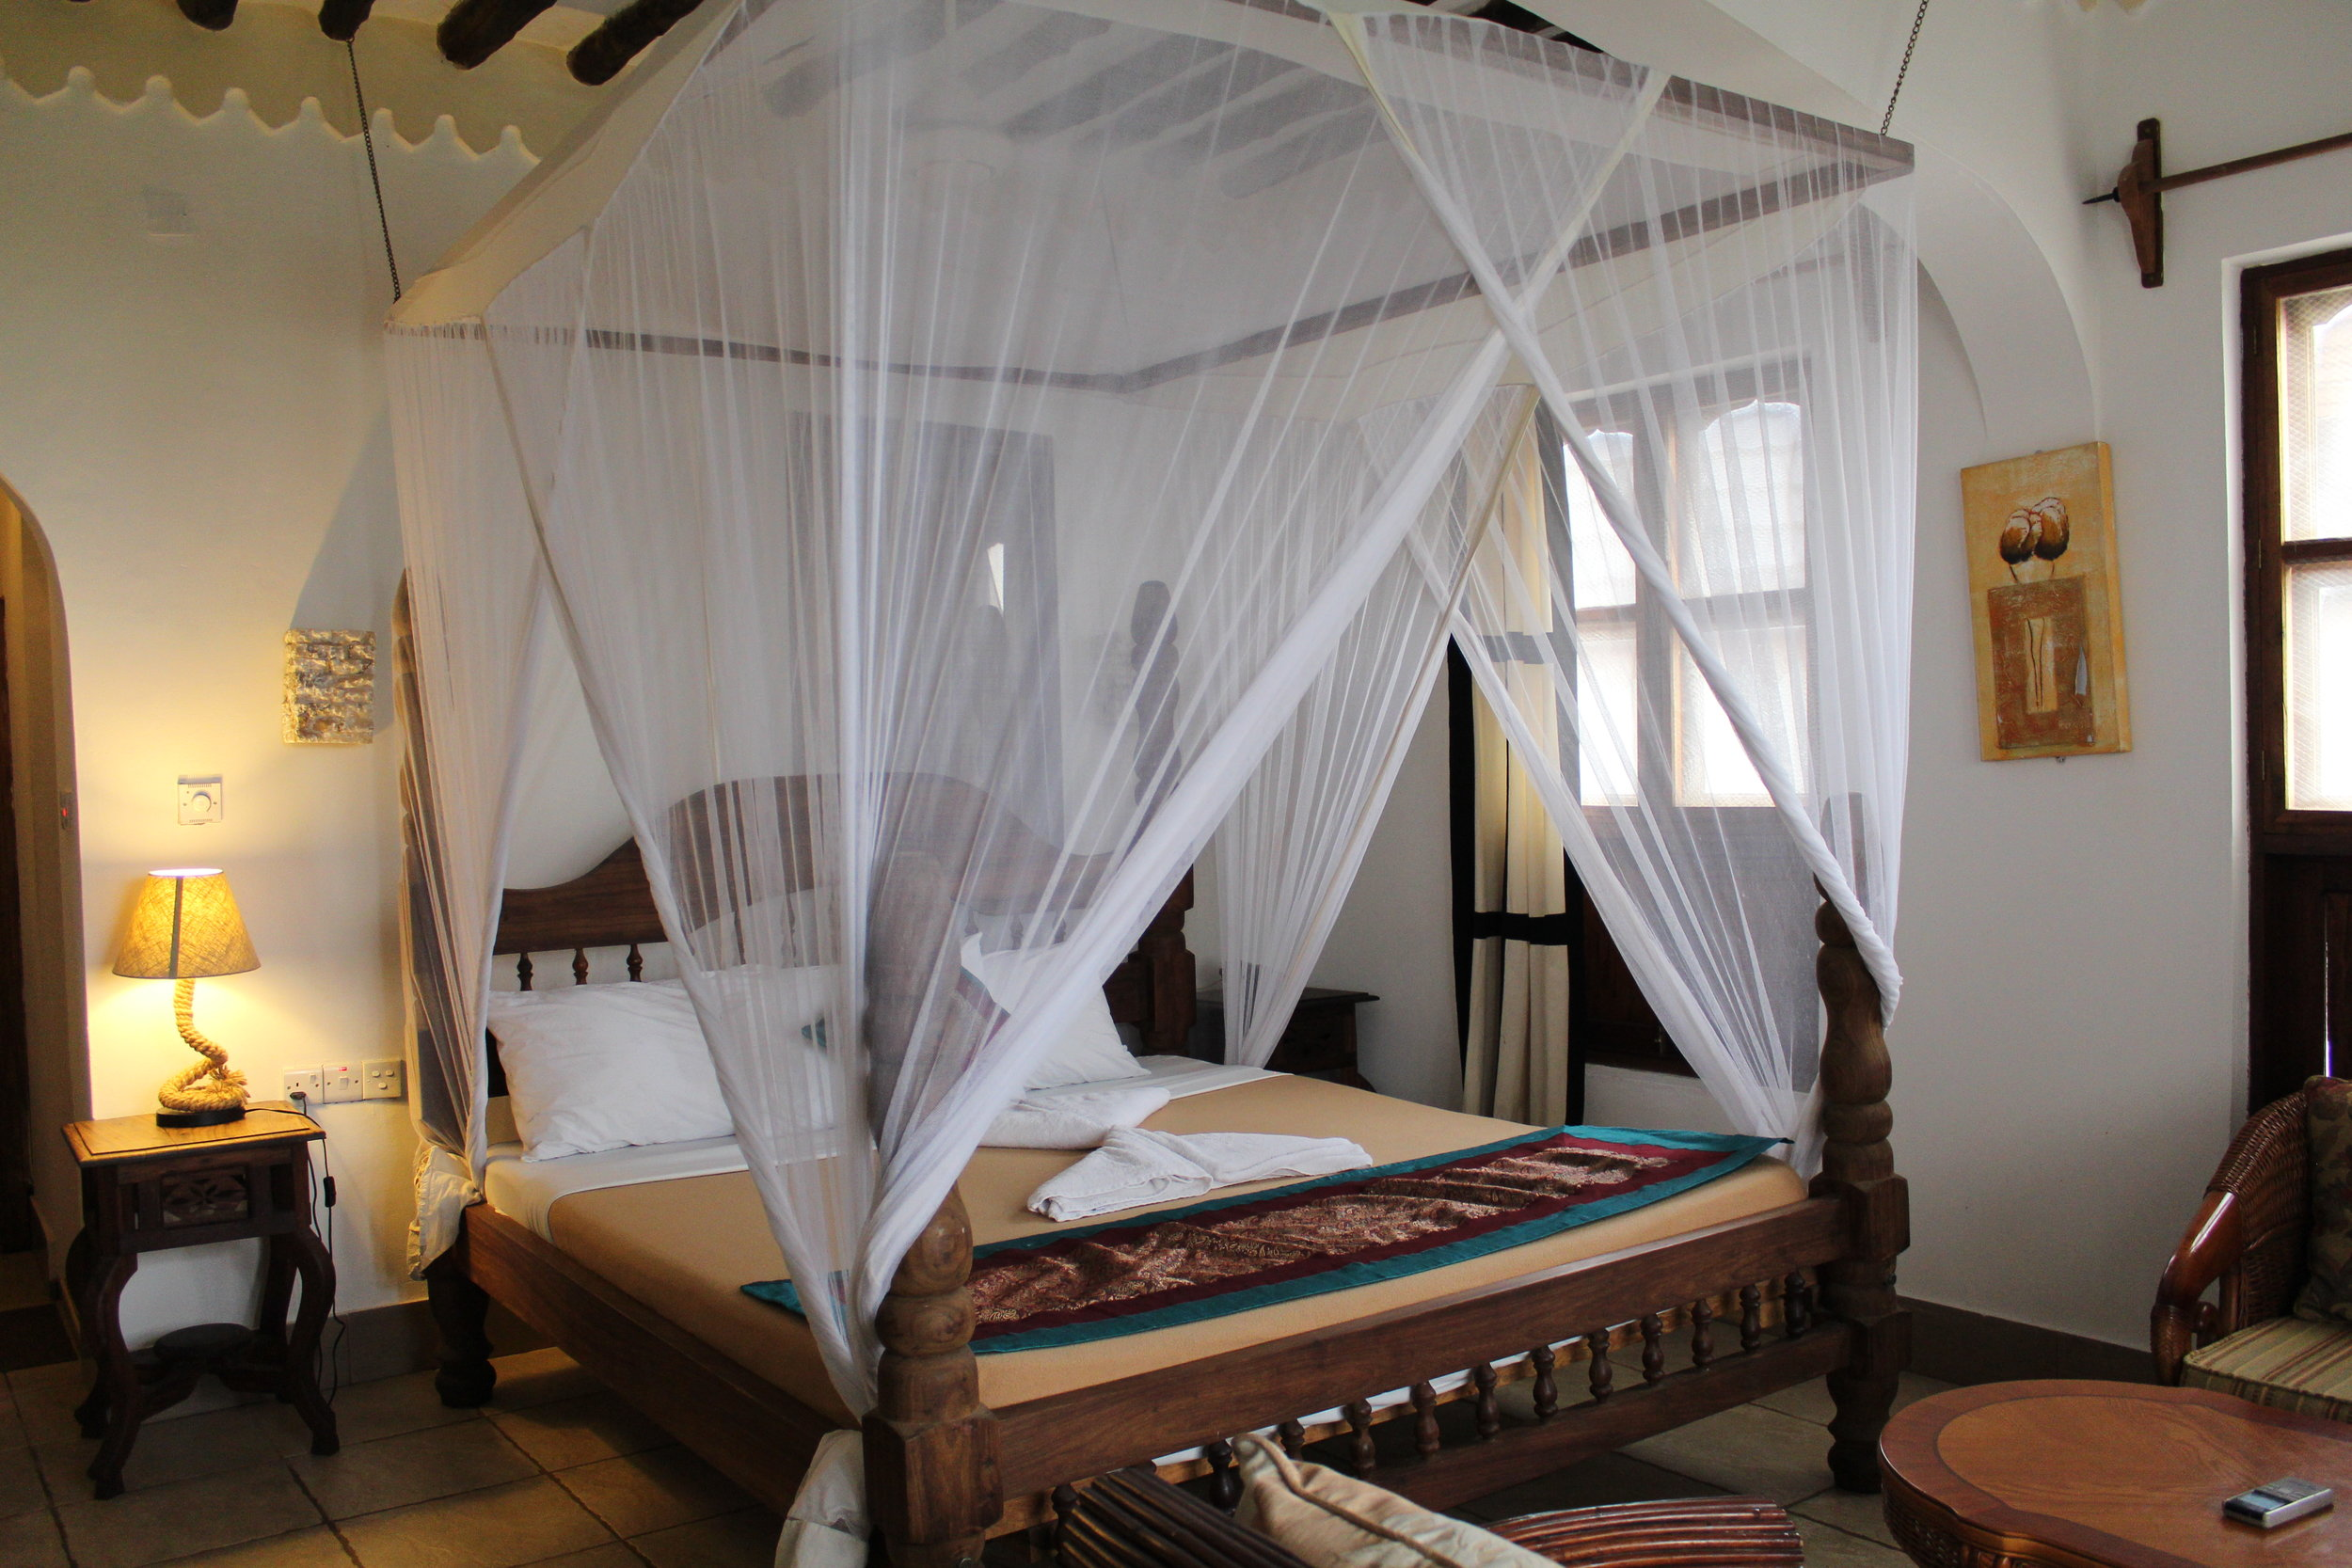 Our beautiful room and bed with mosquito netting at Langi Langi Beach Bungalows in Zanzibar